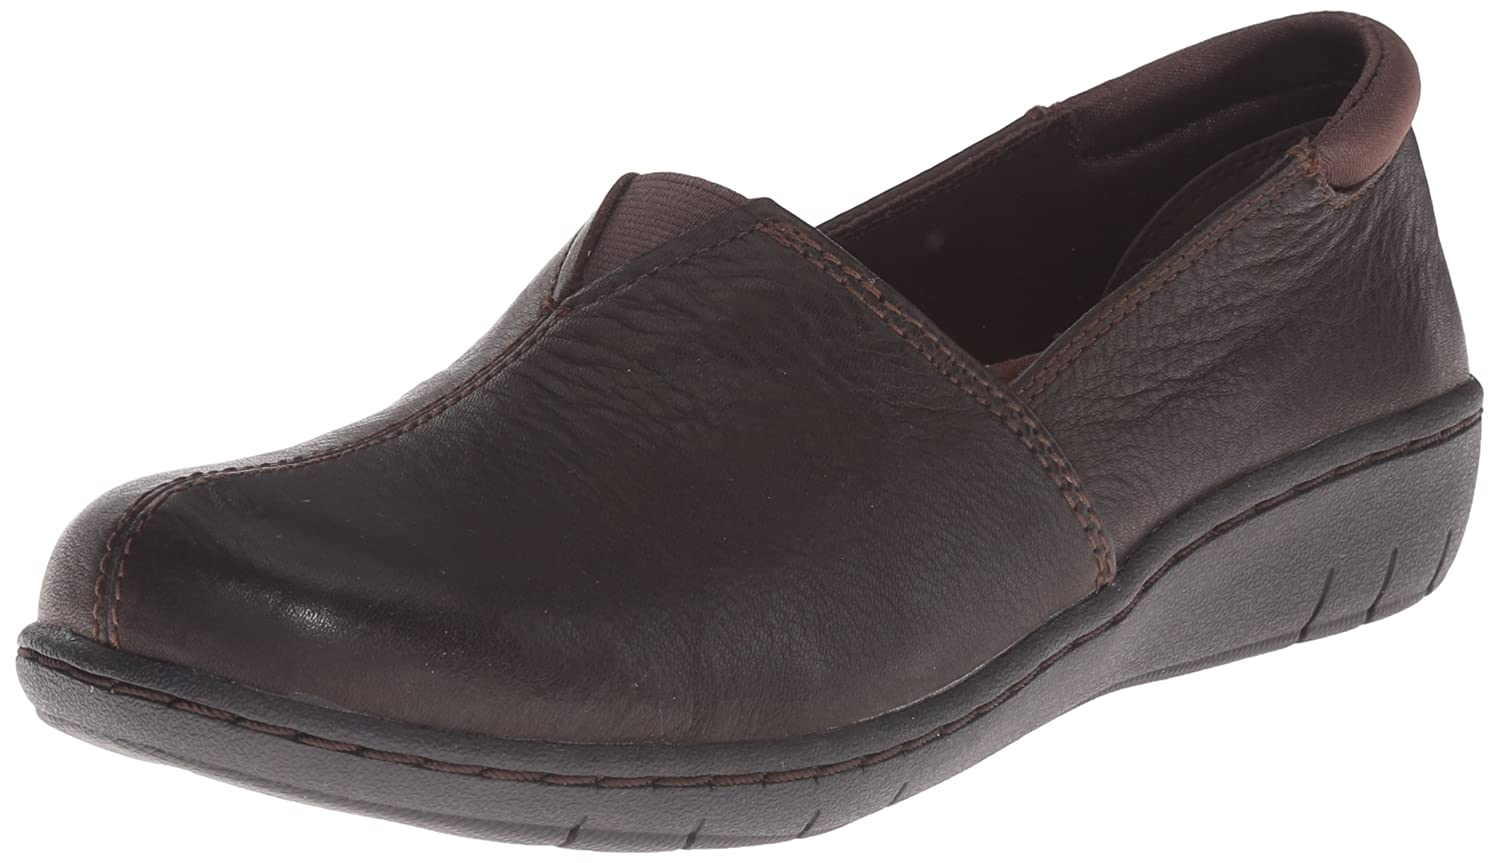 Skechers Women's Washington Seattle Slip-On Loafer B00XNSAC8G 6.5 B(M) US|Dark Brown